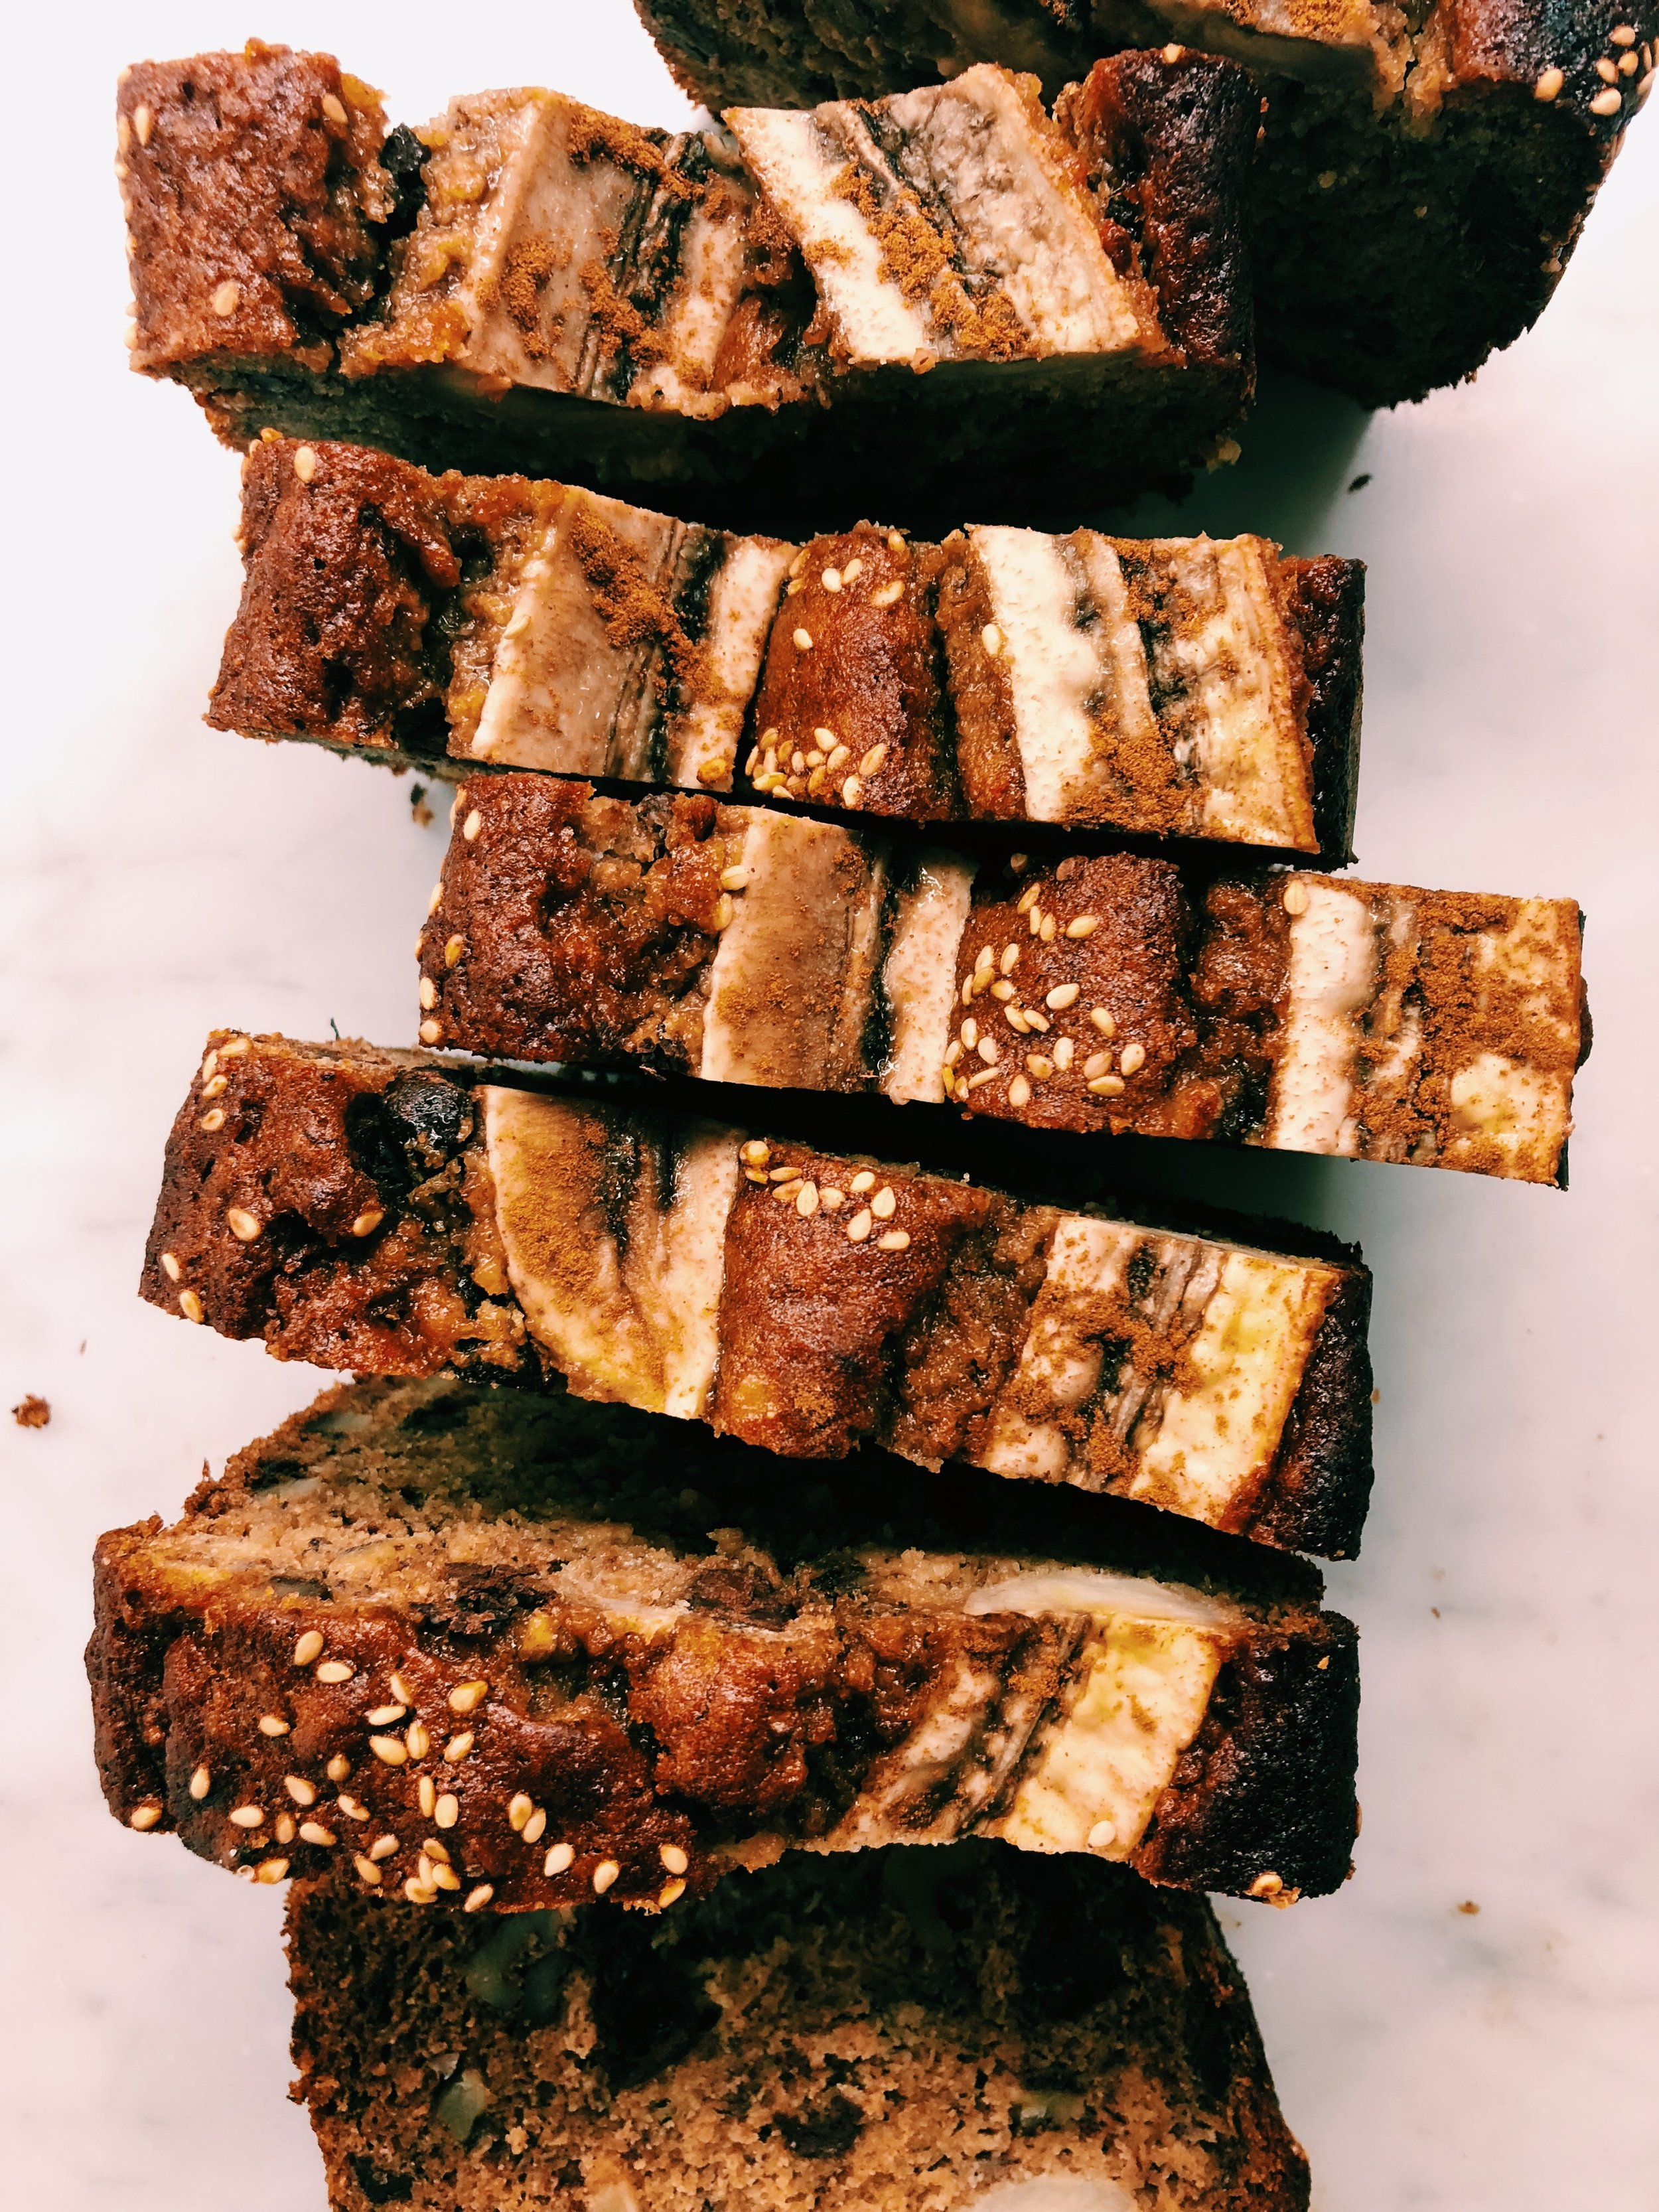 CHOCOLATE CHIP PECAN TAHINI BANANA BREAD - INGREDIENTS1/4 cup tahini1/4 cup honey (I used Wedderspoon K-factor 16 Manuka Honey)1/4 cup olive oil1/4 cup coconut sugar2 eggs4 very ripe, large bananas, plus one slightly ripe banana to halve on top1 1/2 tsp baking soda1 1/2 tsp vanilla1 cup dairy free chocolate chips3/4 cup almond flour1/4 cup gluten free flour, Bob's Red Mill makes a good one1/2 cup chopped pecans (optional)Sesame seeds and cinnamon for sprinkling on top (optional)